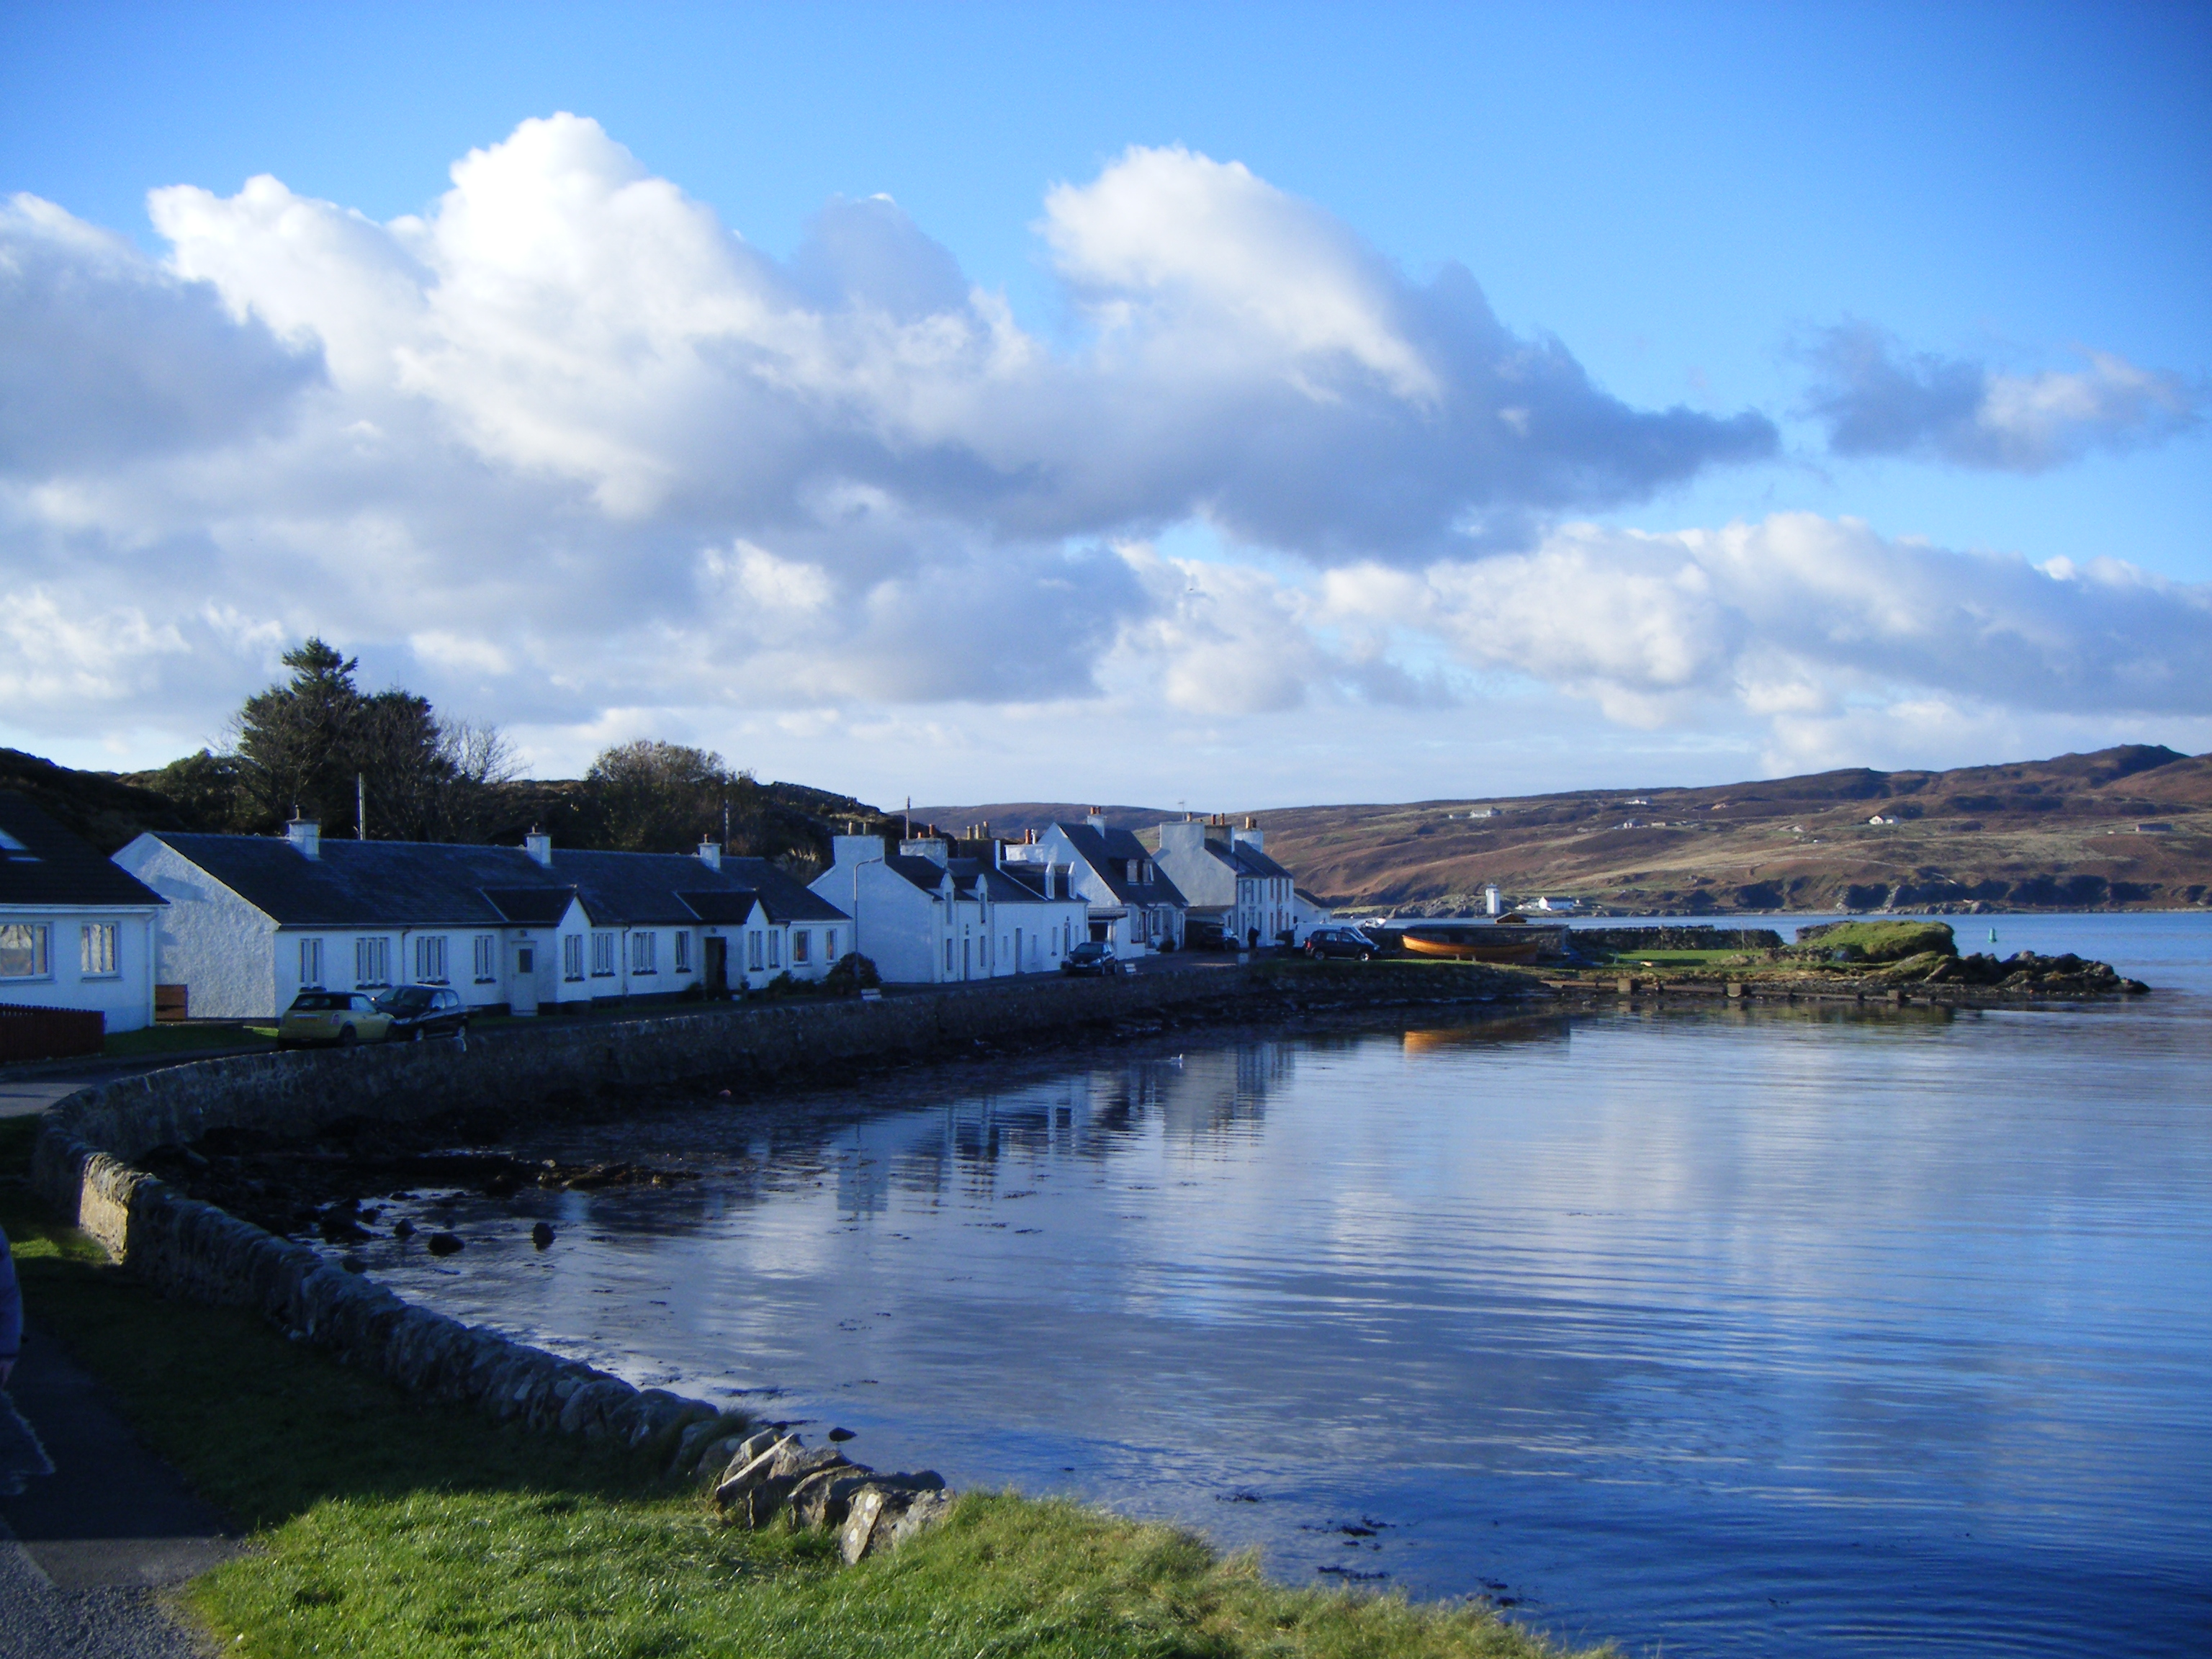 Port Ellen - Fredereck Crescent and the Ard